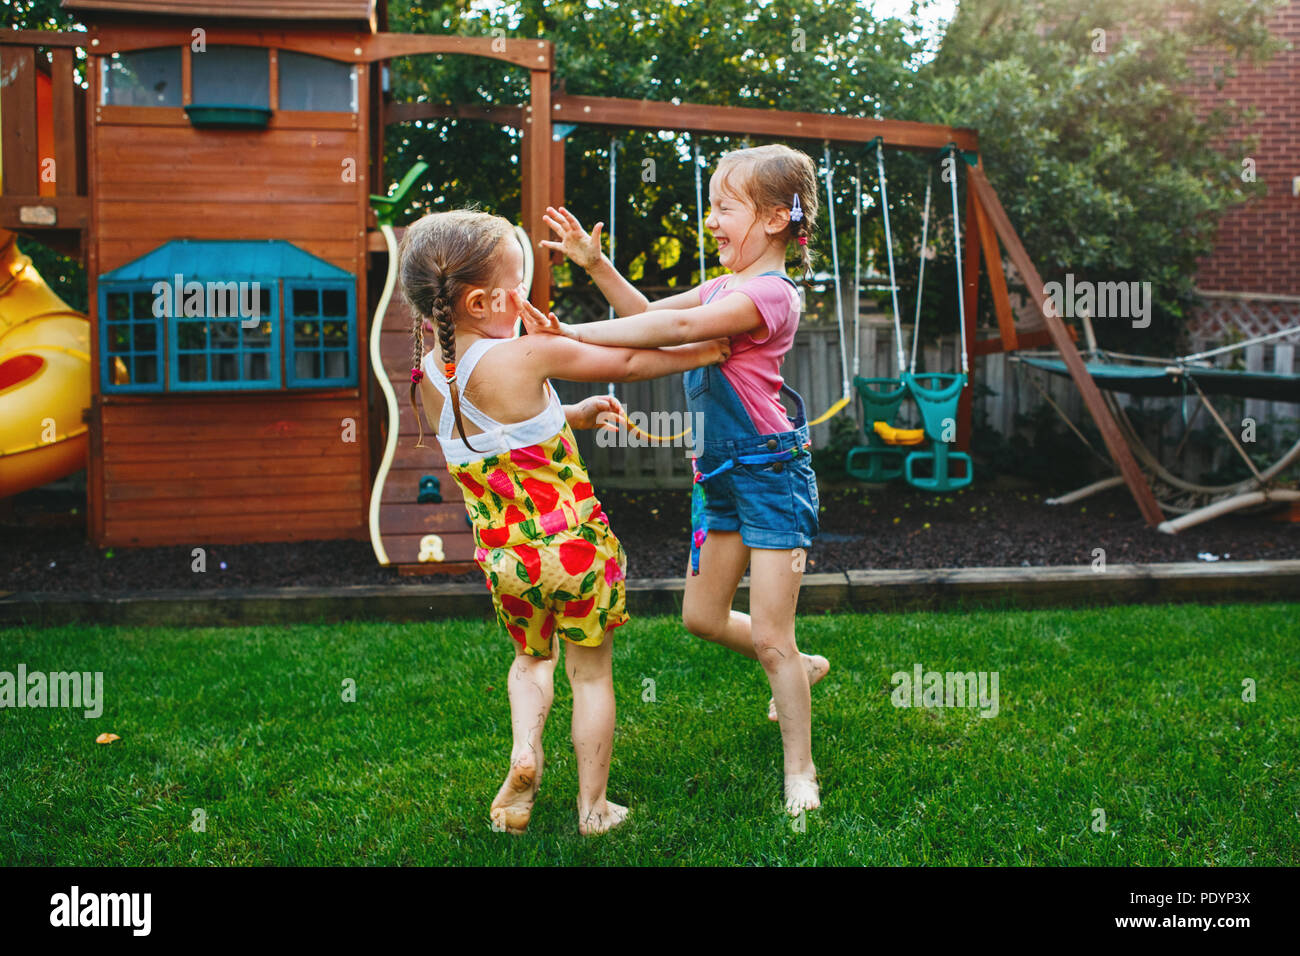 Portrait Of Two Little Girls Sisters Fighting On Home Backyard Friends Girls Having Fun Lifestyle Candid Family Moment Of Siblings Quarreling Play Stock Photo Alamy